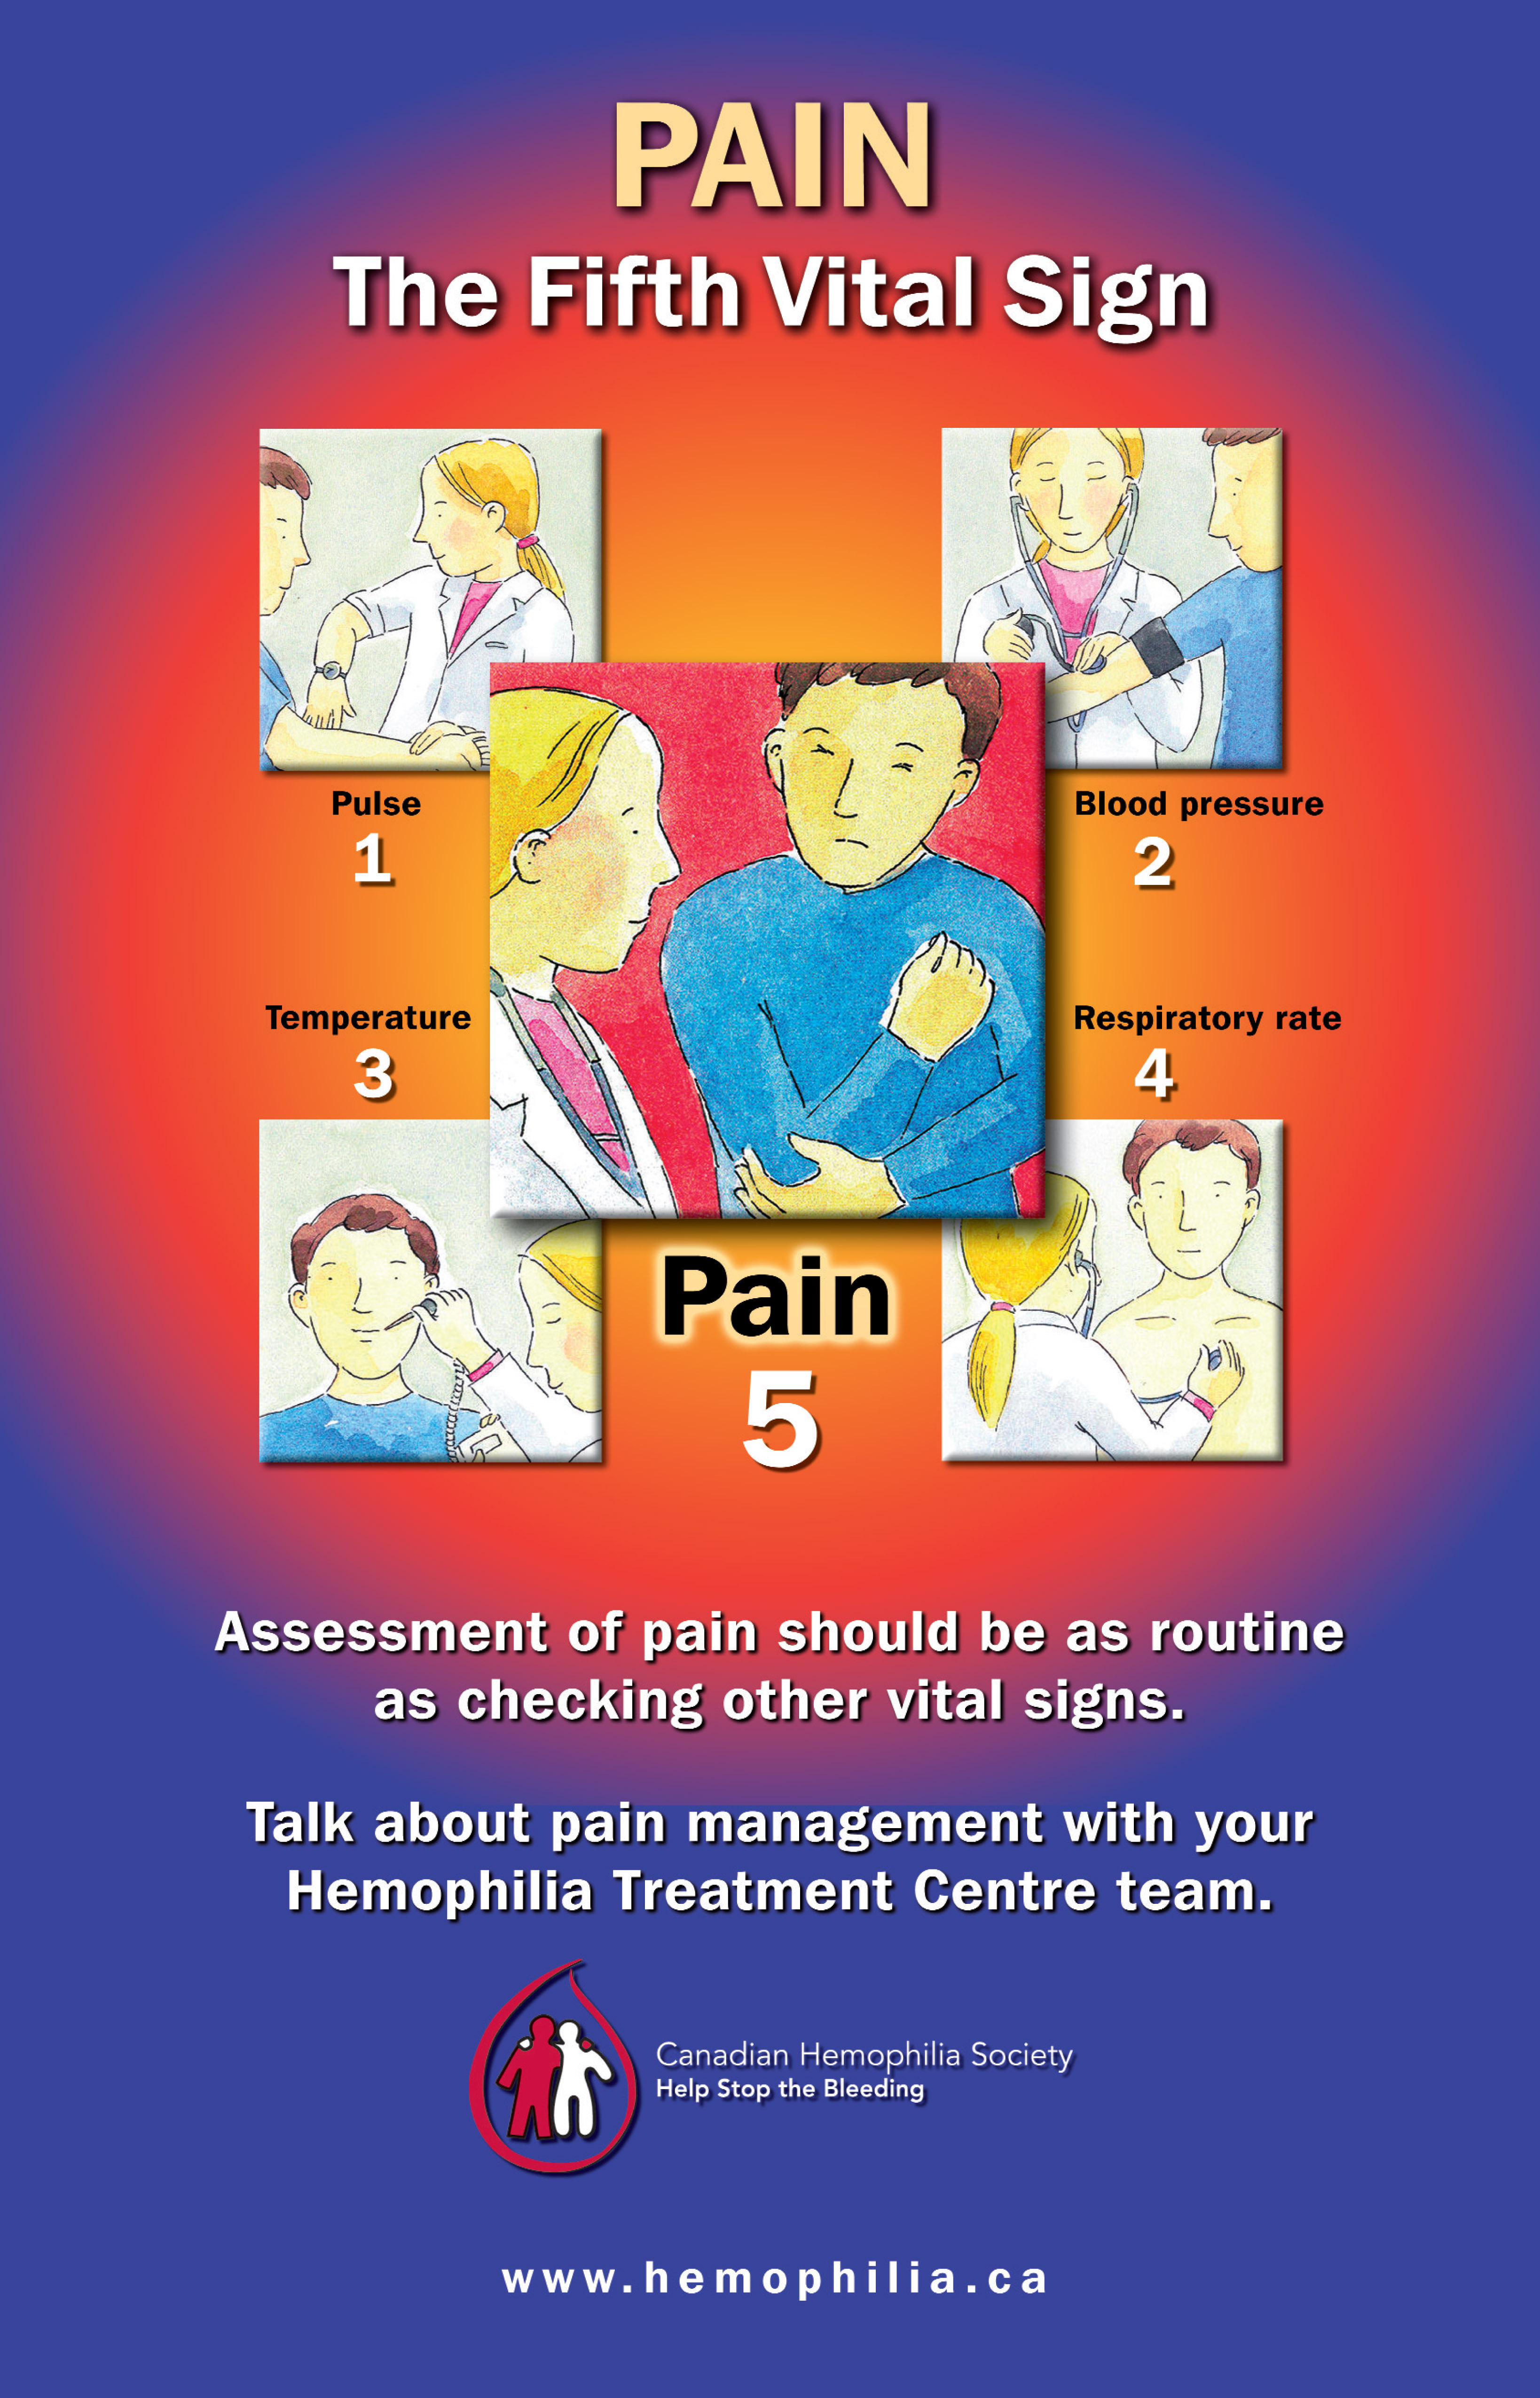 pain management thesis Spea undergraduate h onors thesis the opioid analgesic epidemic: who is  doctors about proper pain management,  the opioid analgesic epidemic: who is.